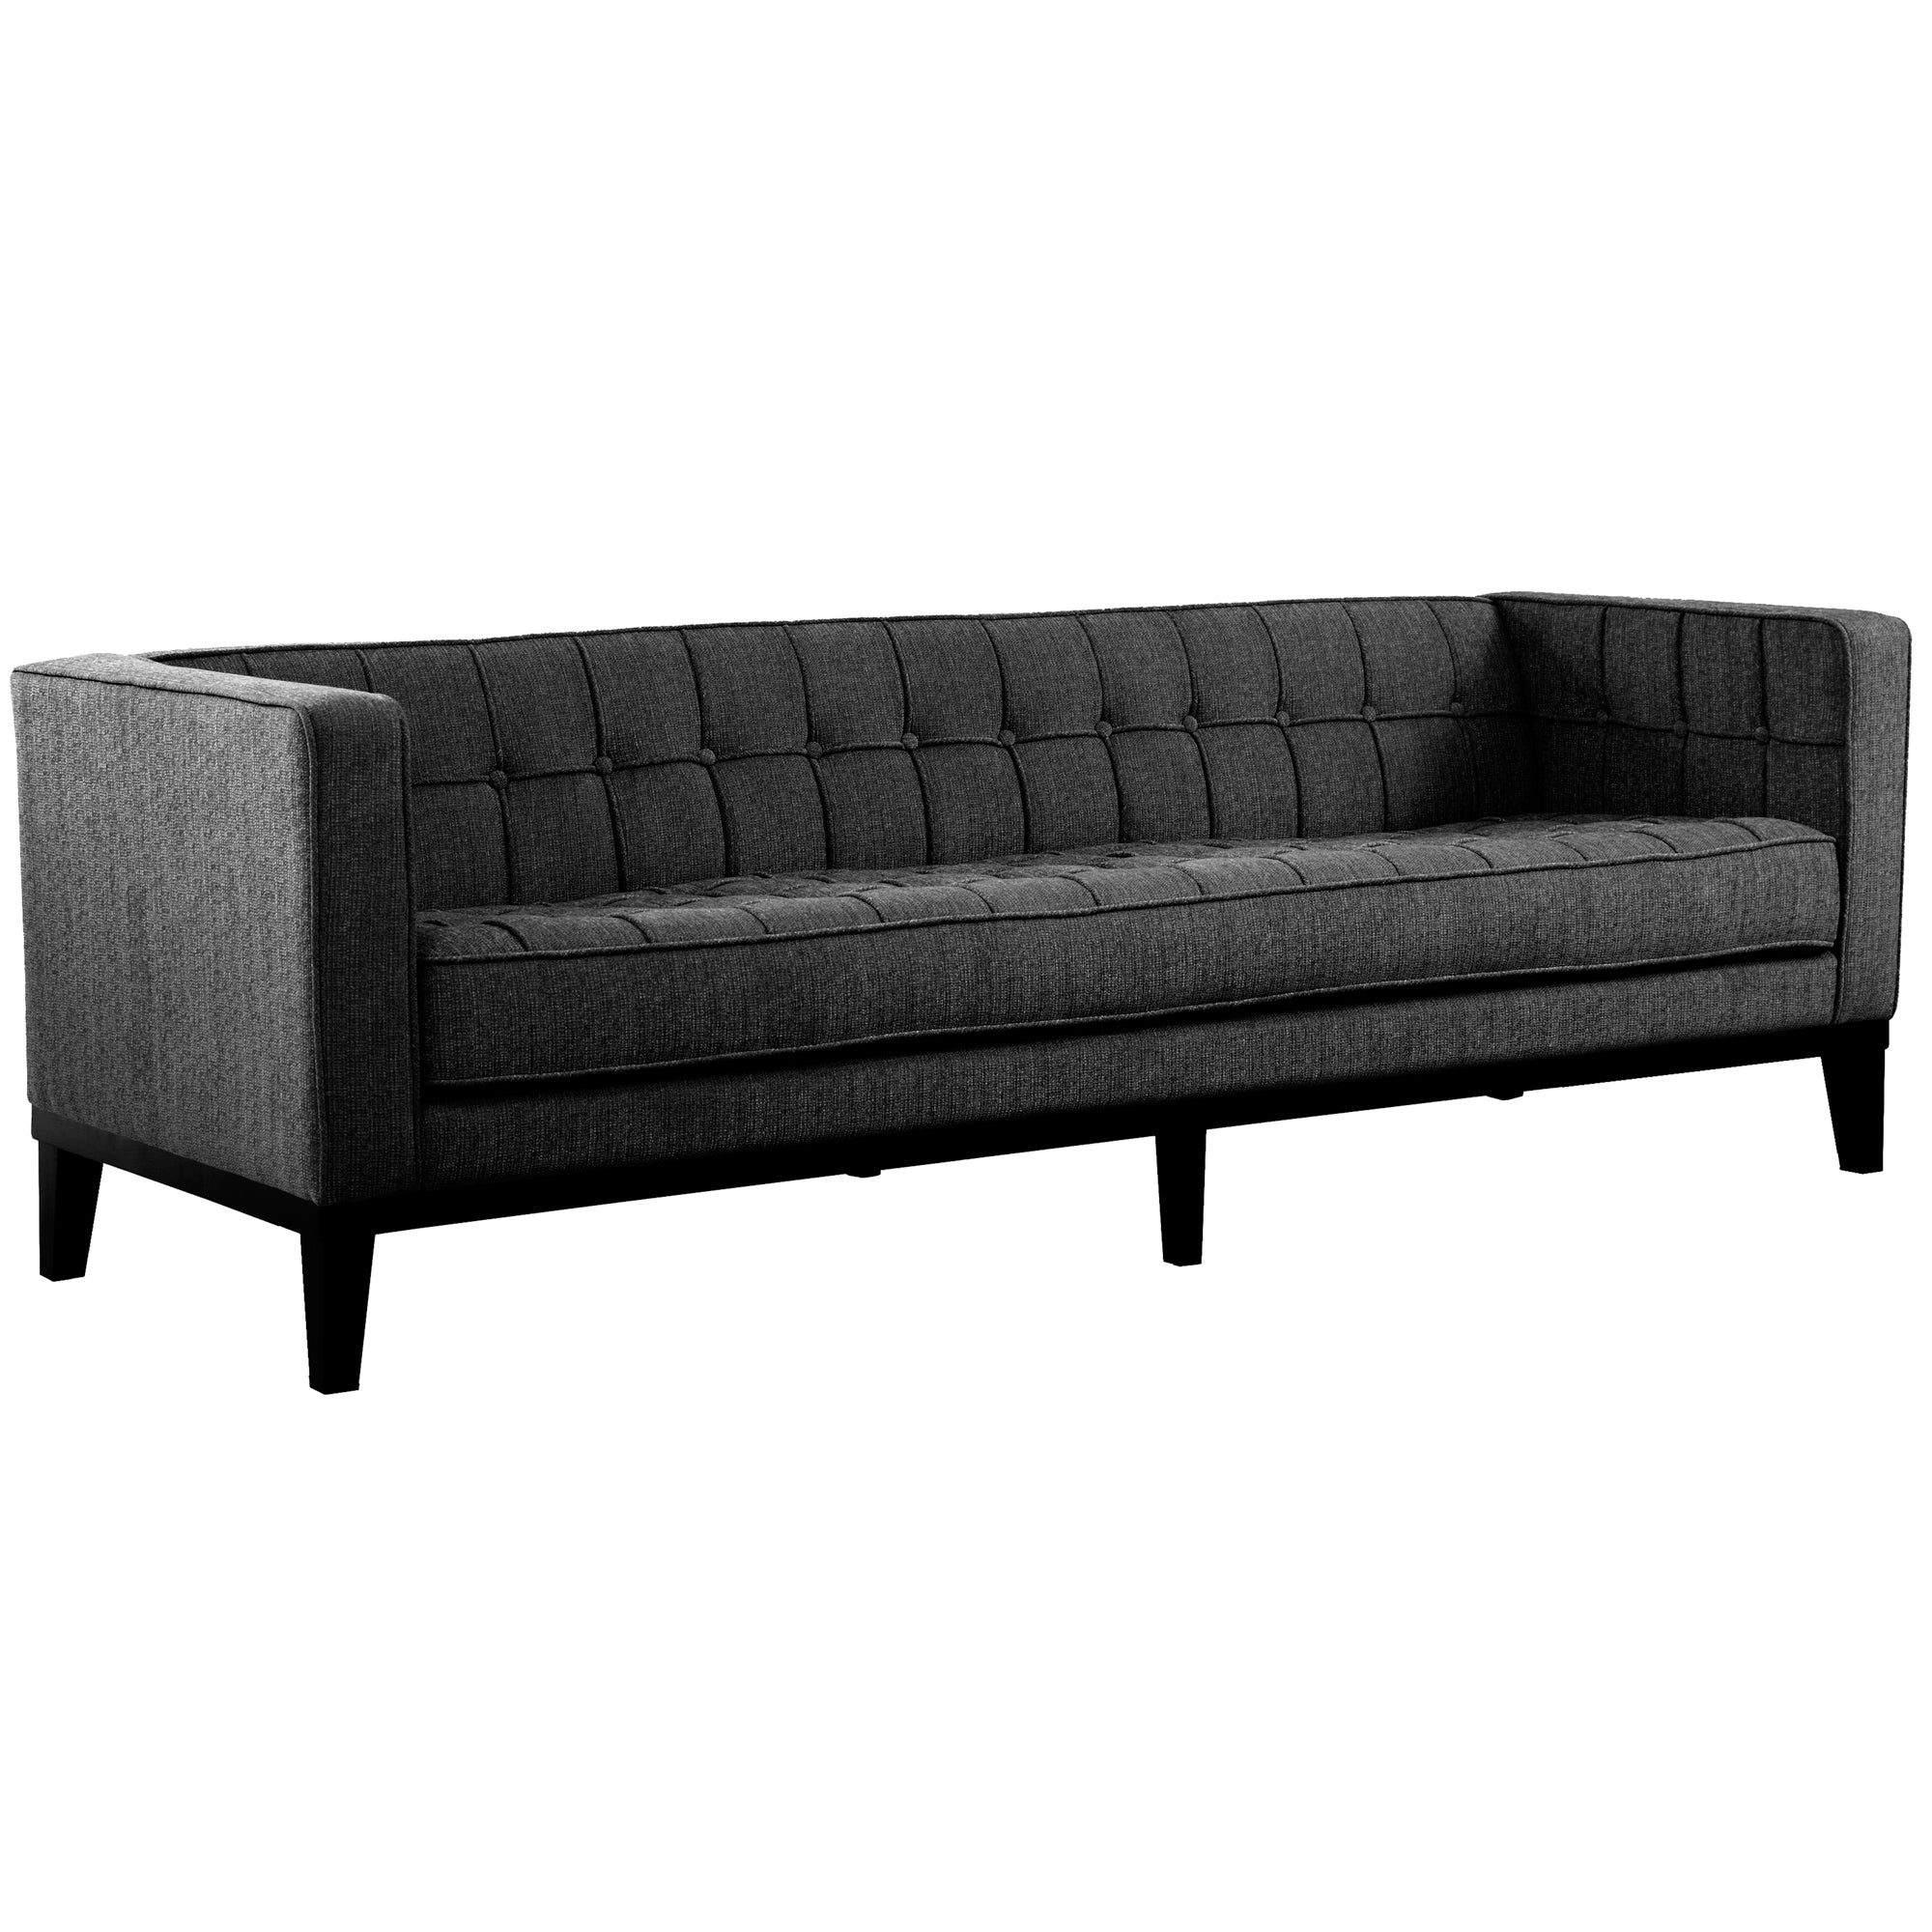 Sofa Charcoal Fabric 16633 Product Photo